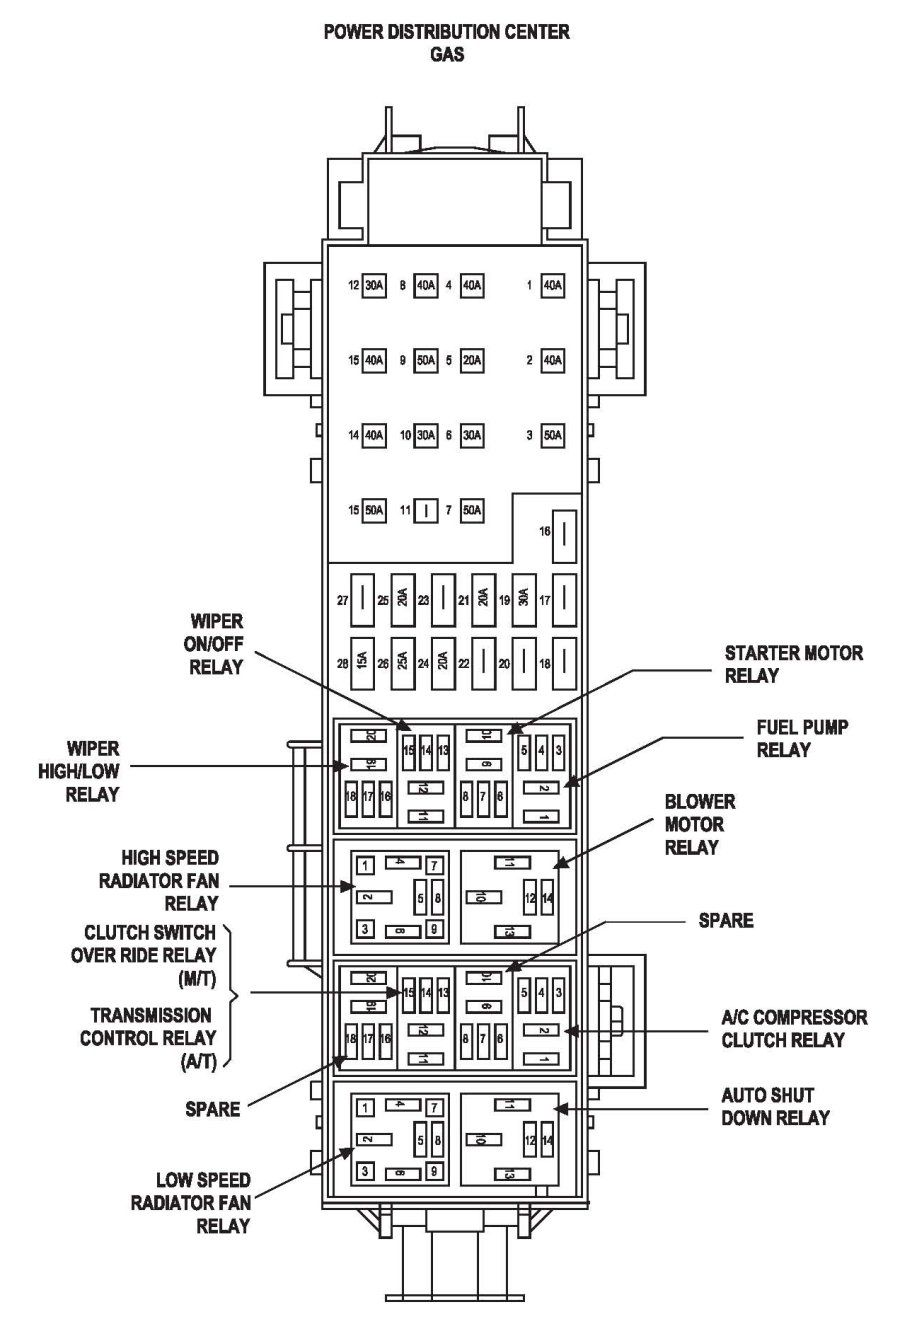 Furnace Atwood Diagram Wiring 7911 11 Reveolution Of Rv Thermostat 05 Liberty Fuse Box Another Blog About U2022 Rh Ok2 Infoservice Ru Hydro Flame Schematic 8531